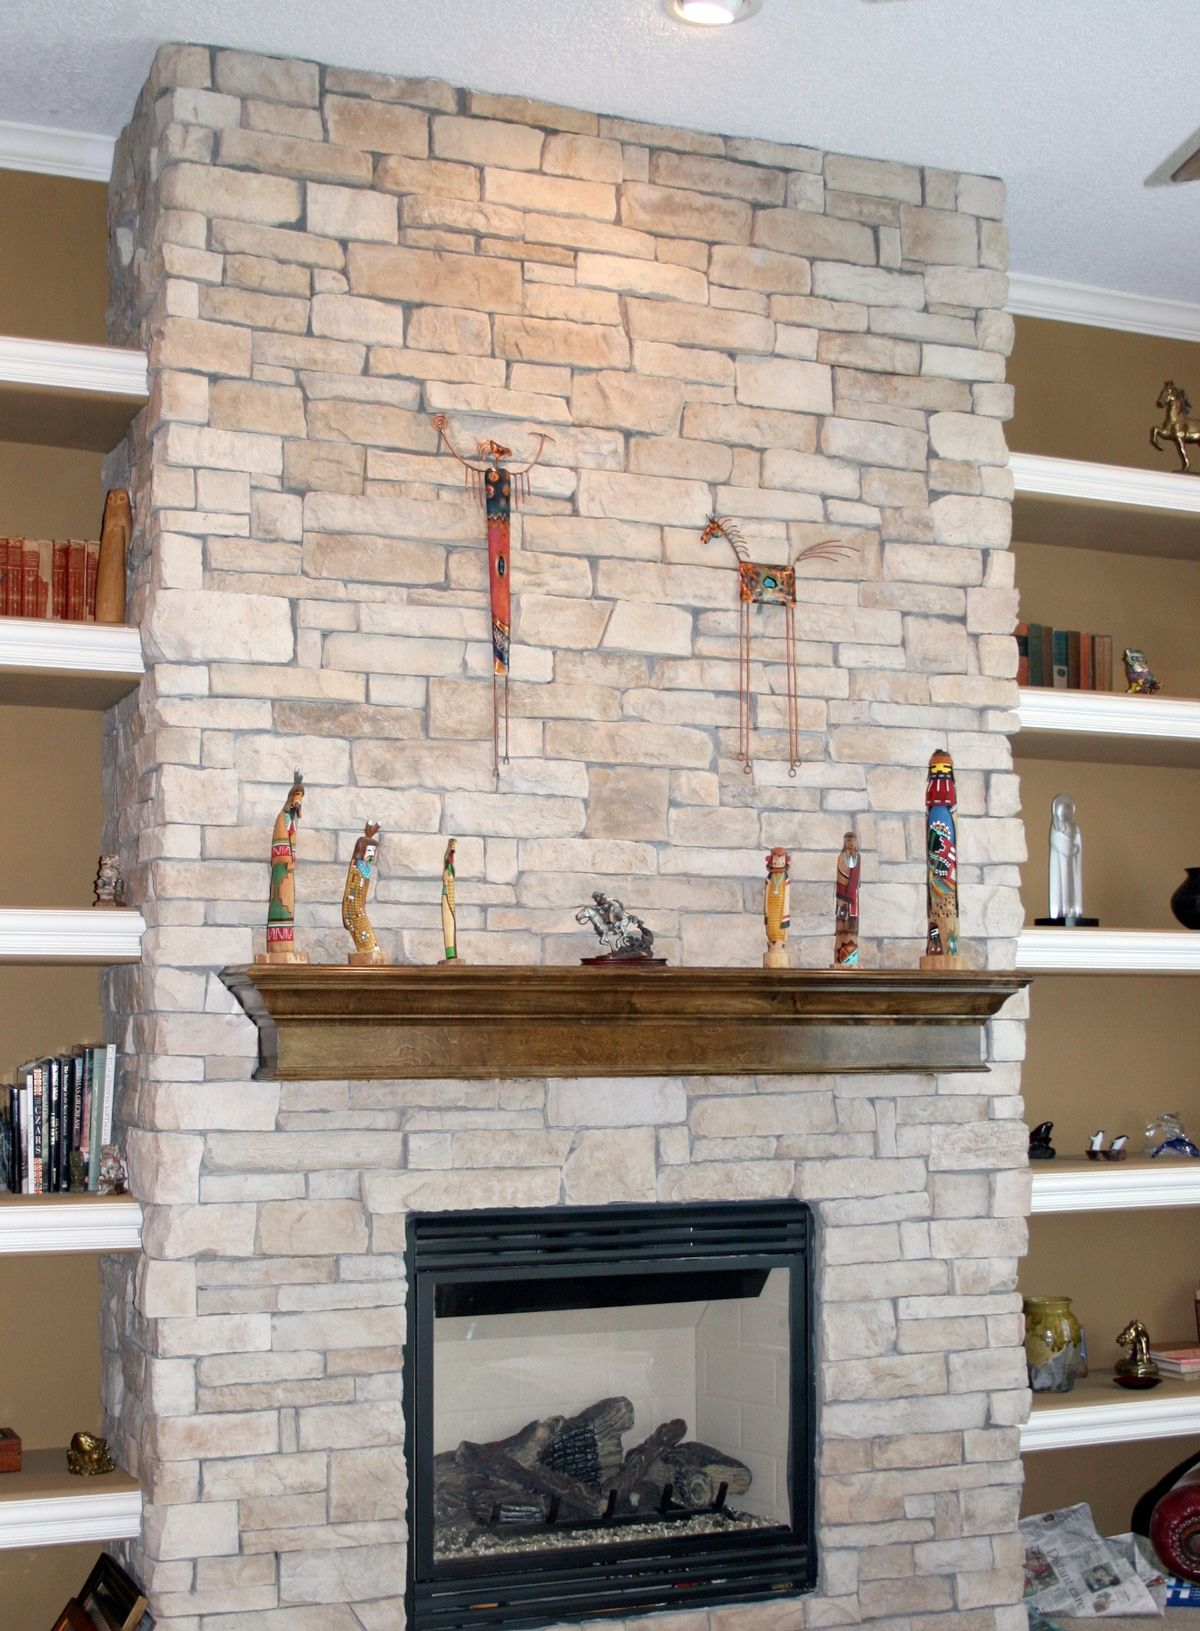 CANYON-LEDGE-TEXAS-CREAM-stone-fireplace-ideas-stone-walls.jpg ...